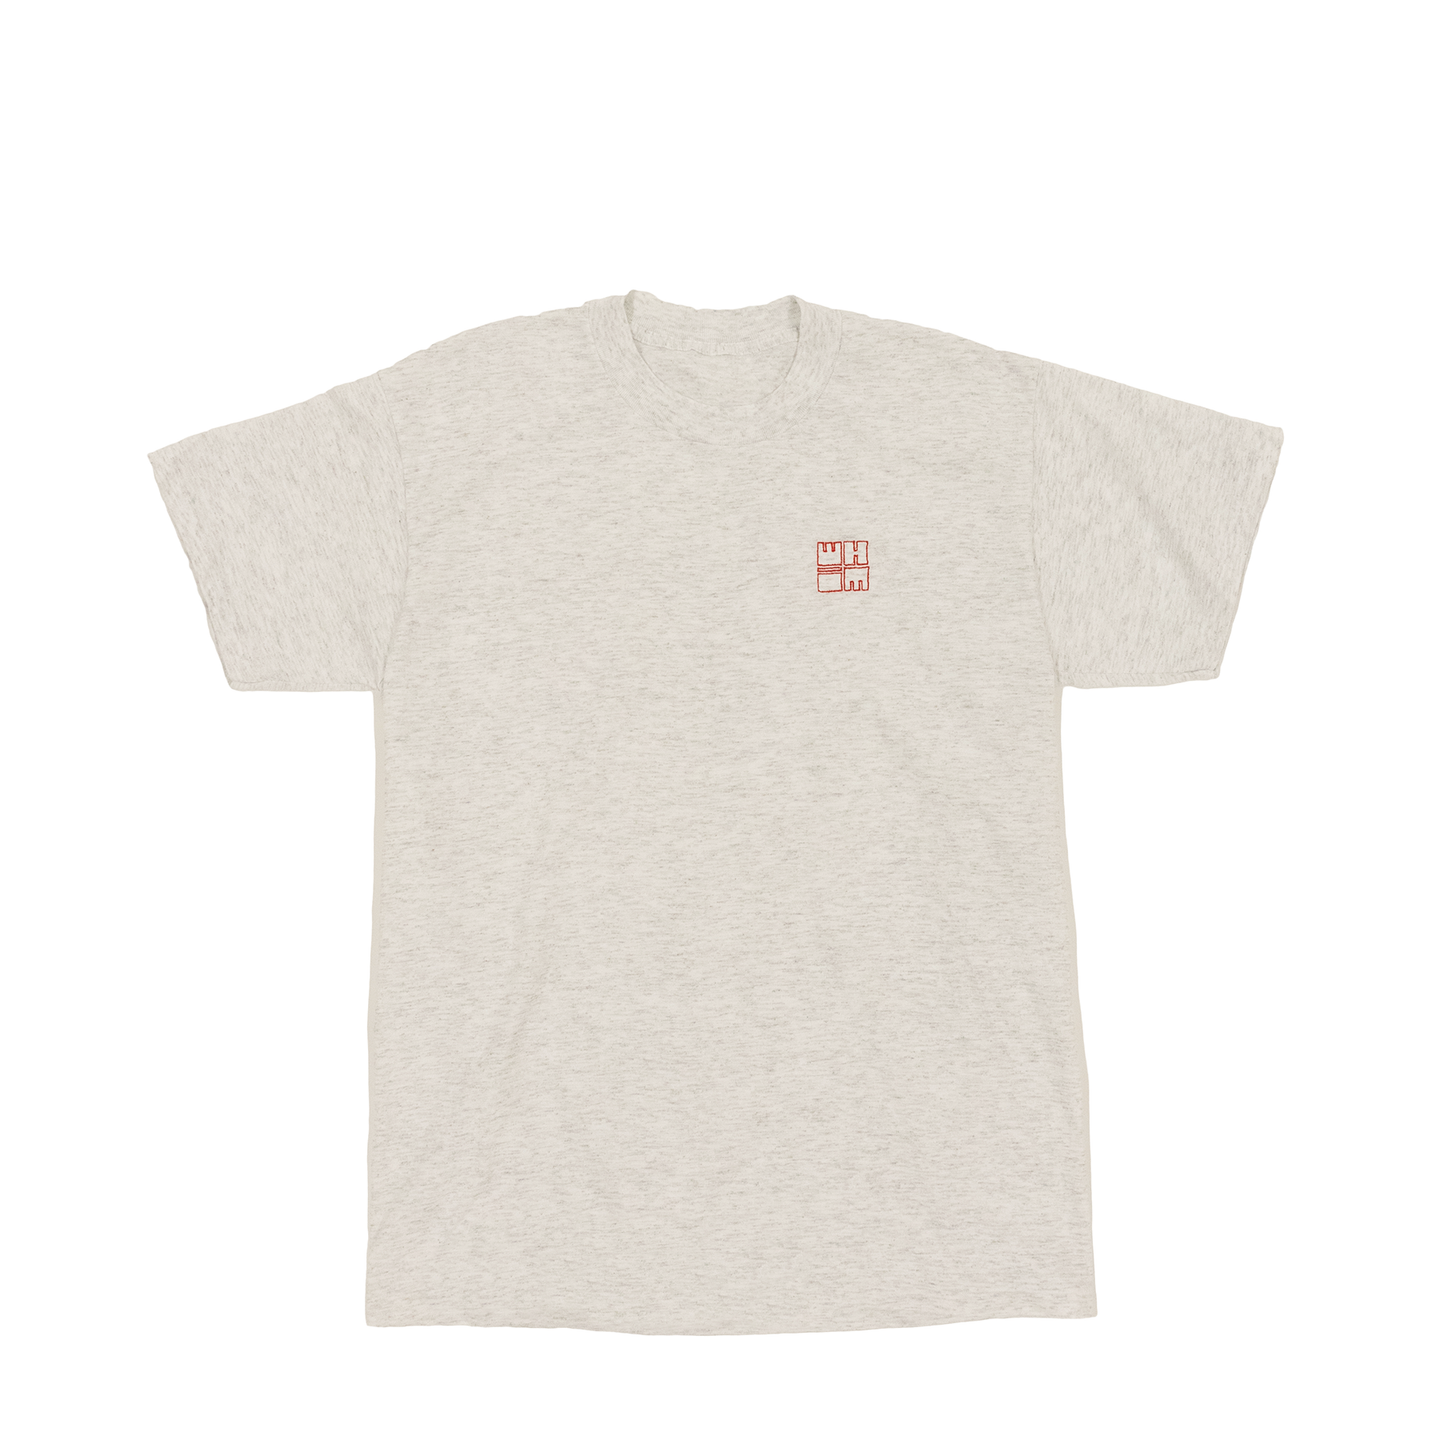 Whim Square Embroidered Heather Grey T-Shirt